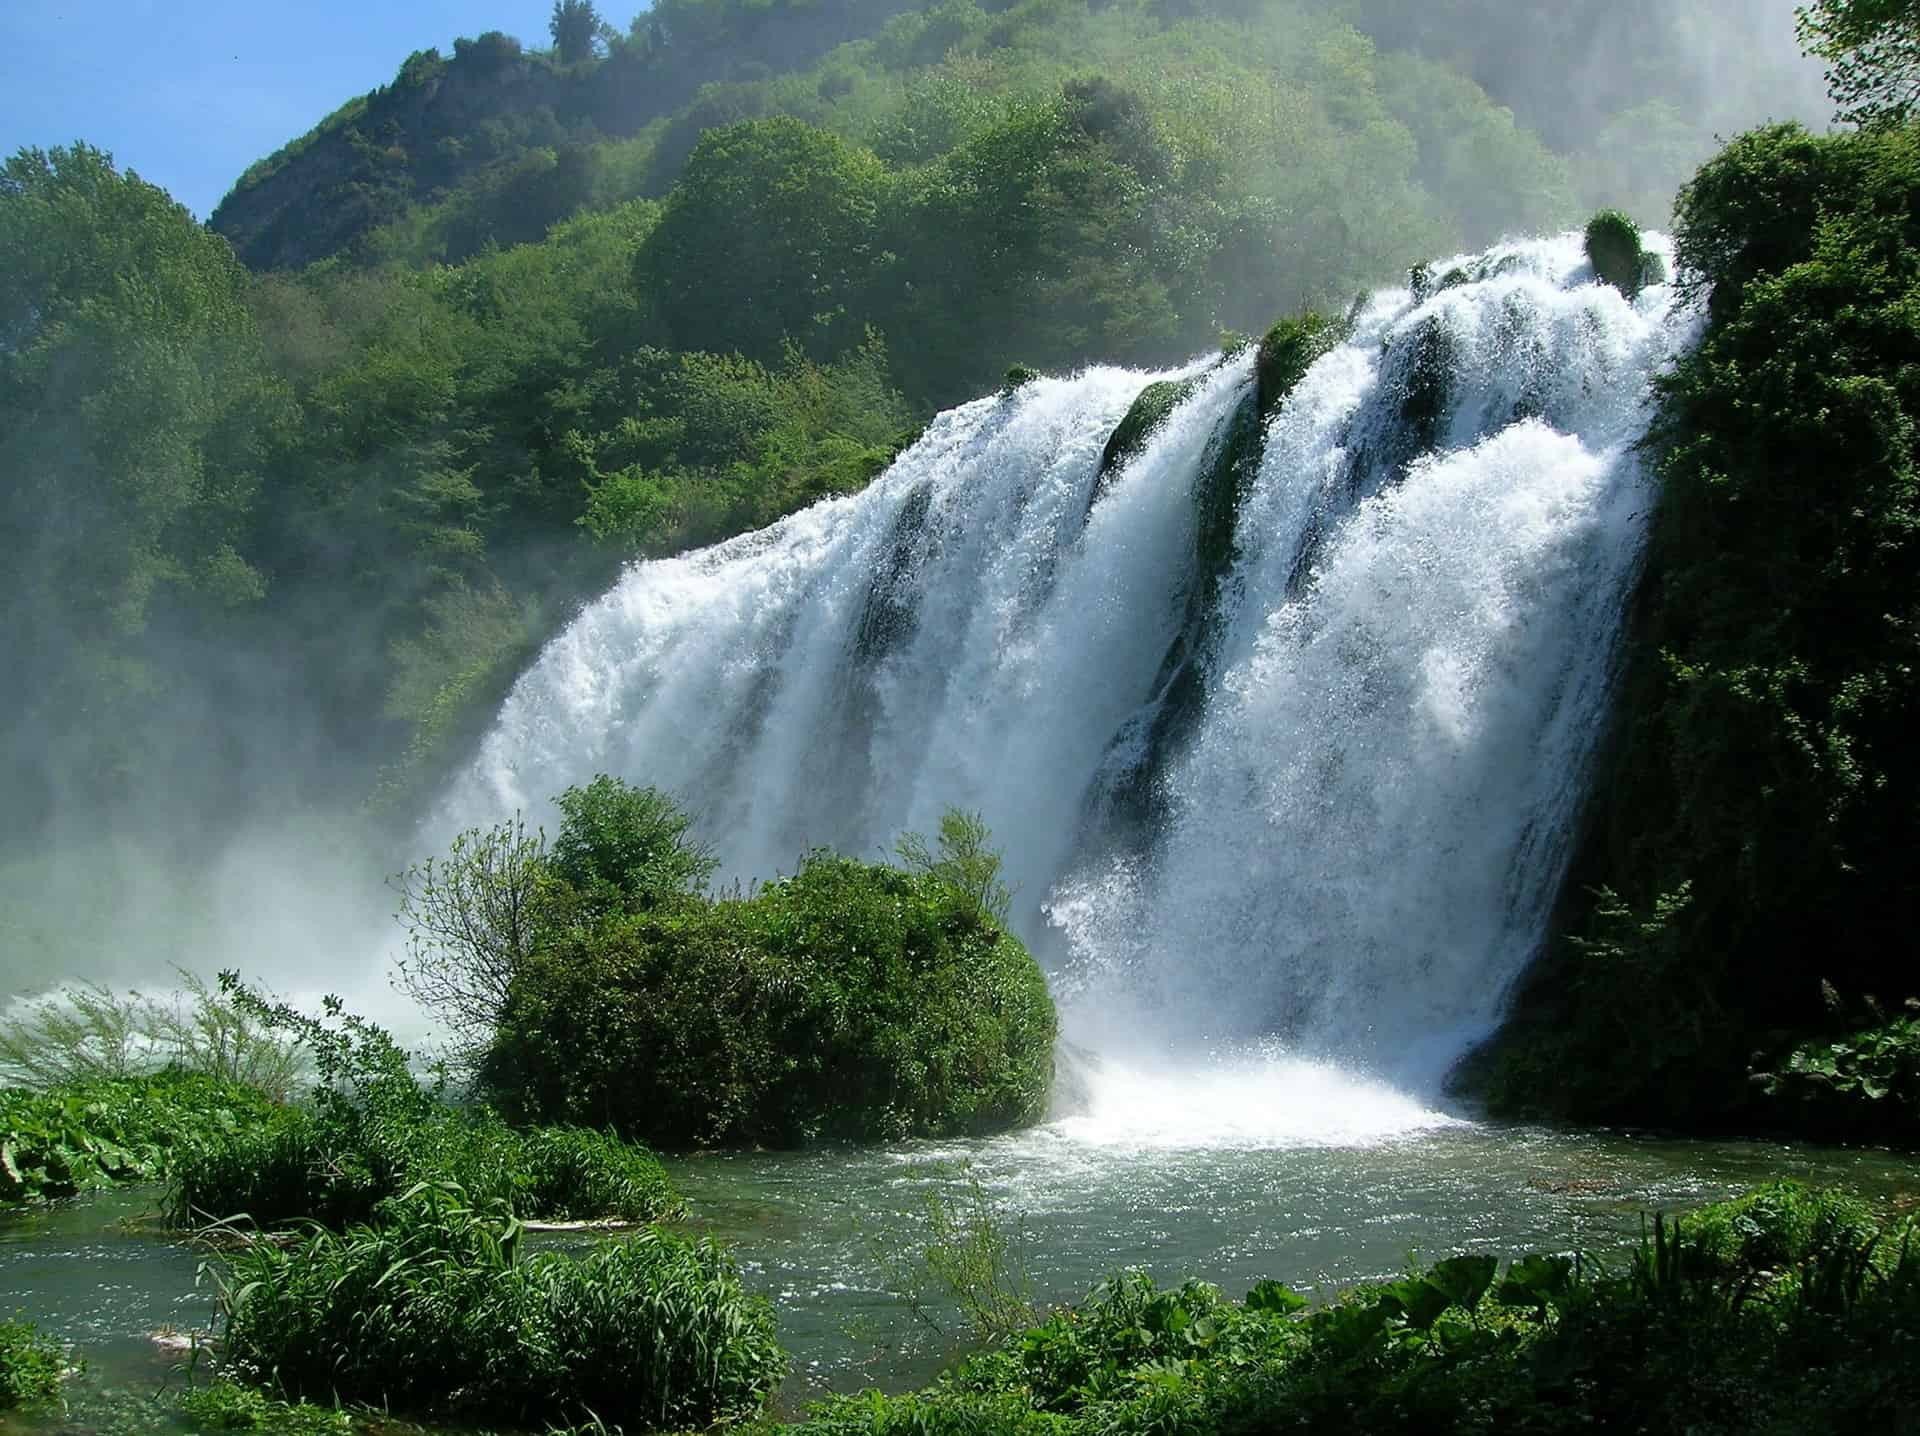 Italy - Umbria - Marmore Waterfalls Landscape View